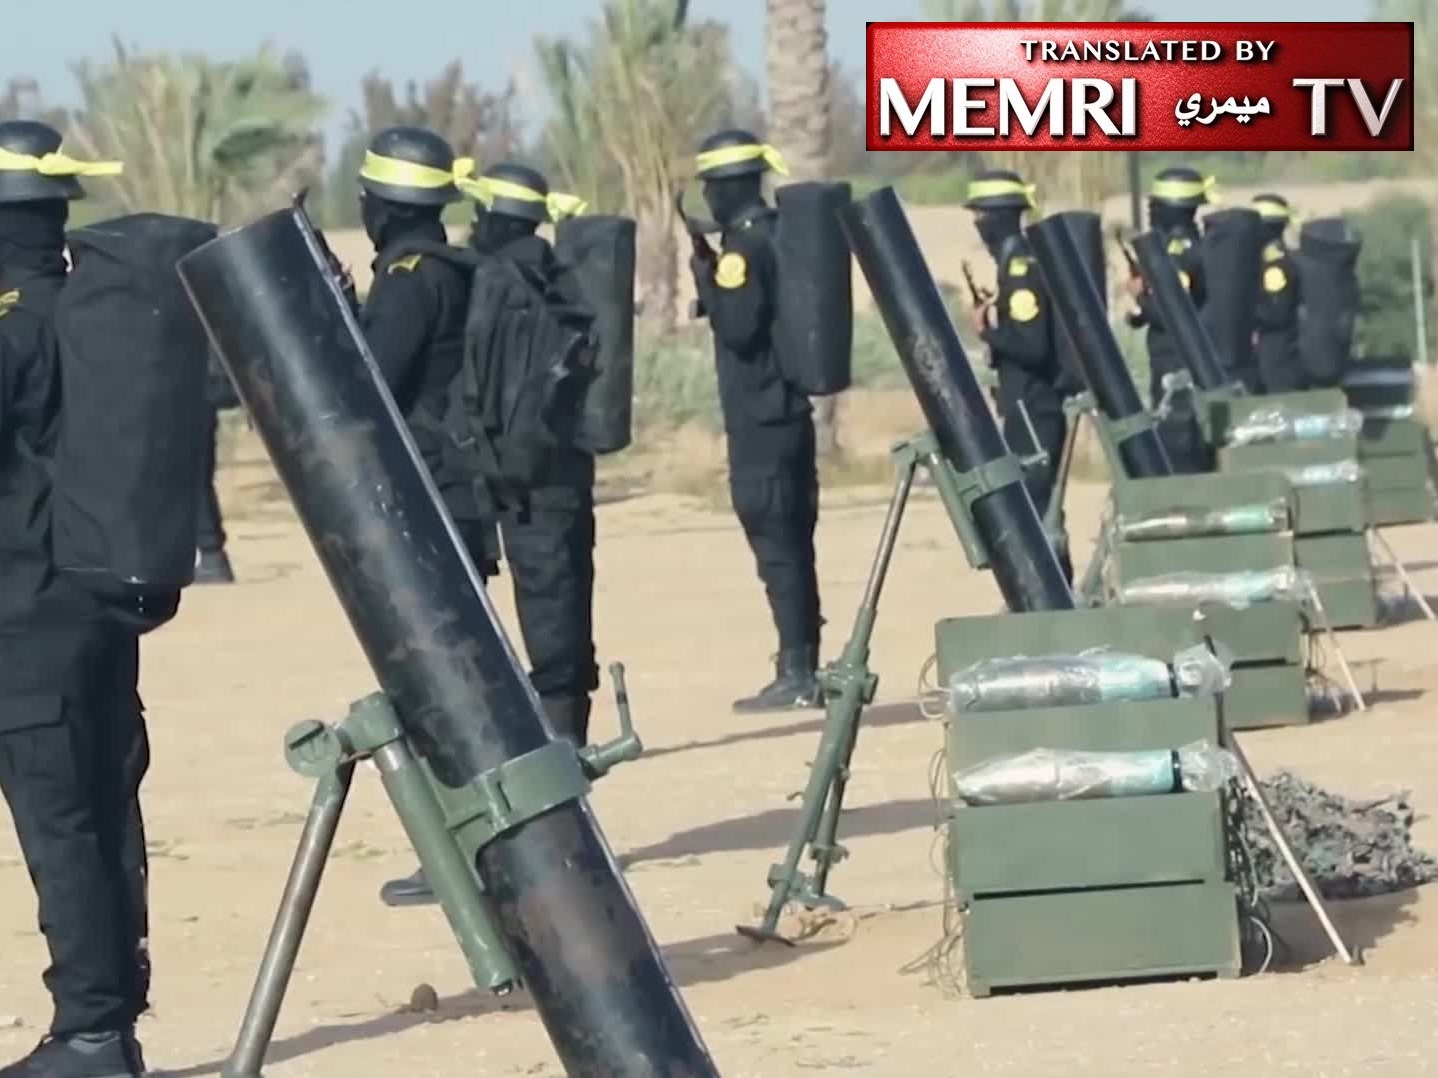 Gaza-Based Fatah Splinter Group Performs Military Exercise, Including Simulated Kidnapping of Israeli Soldier